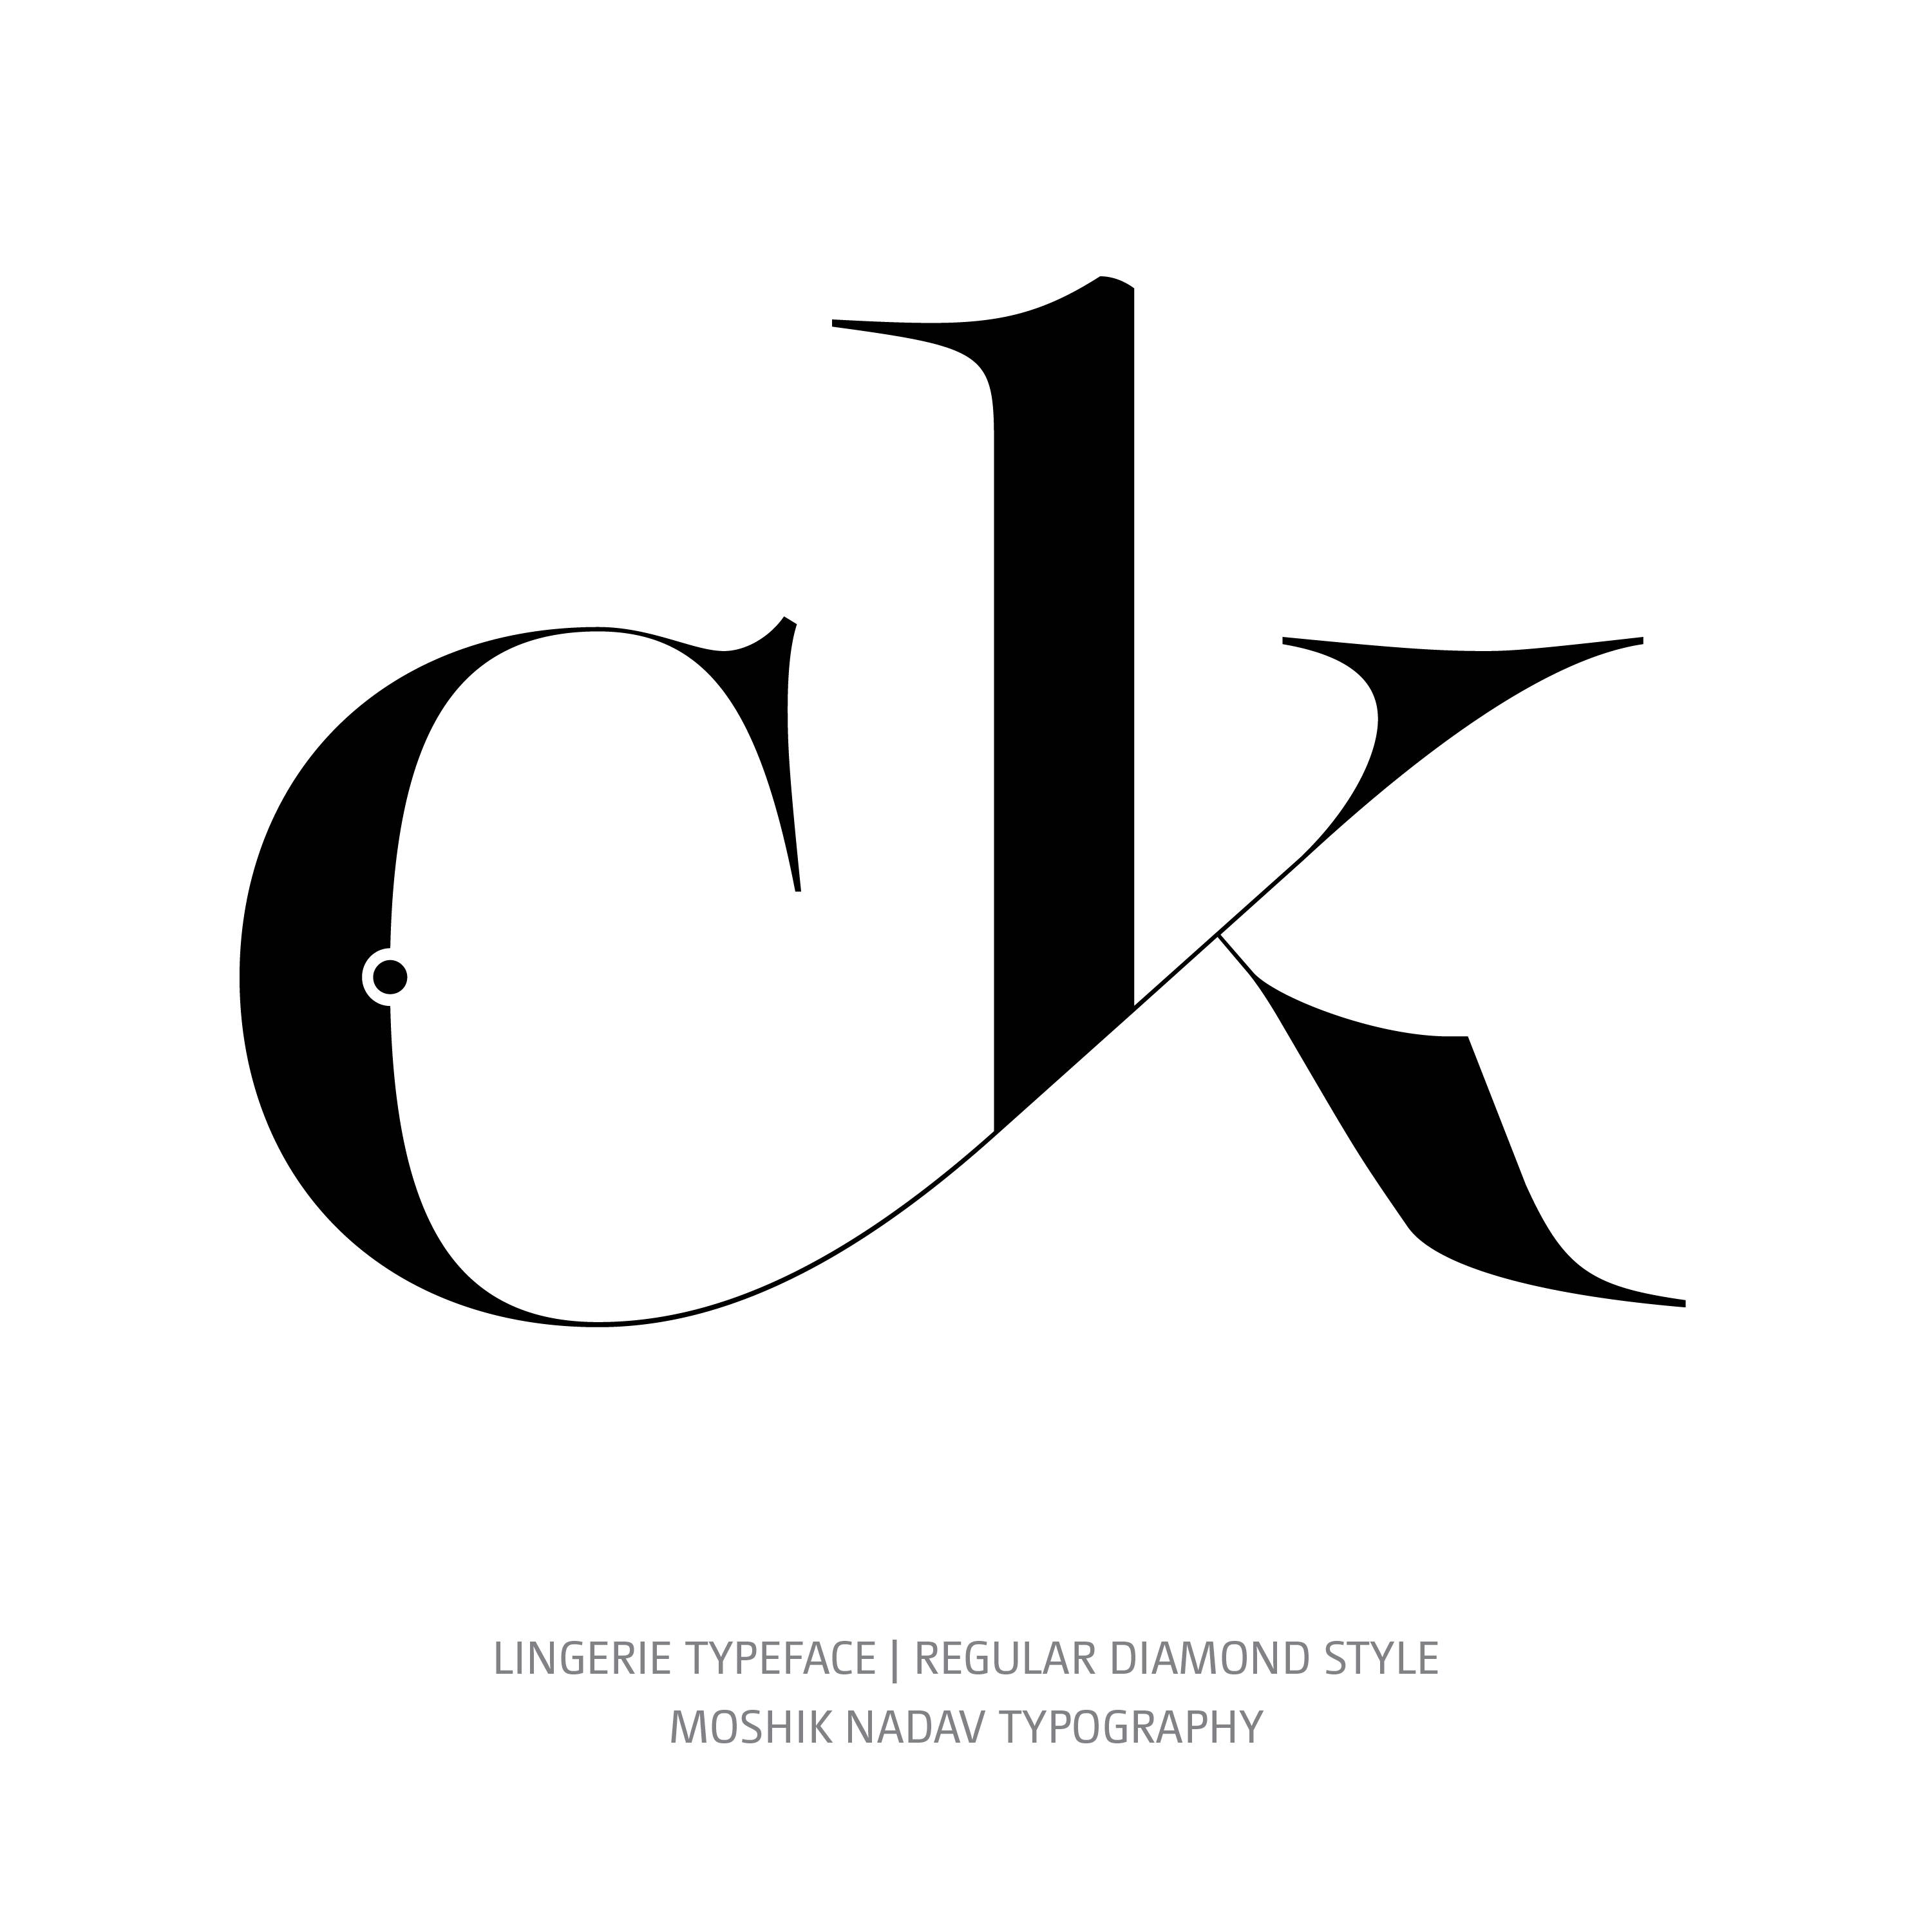 Lingerie Typeface Regular Diamond ck ligature glyph